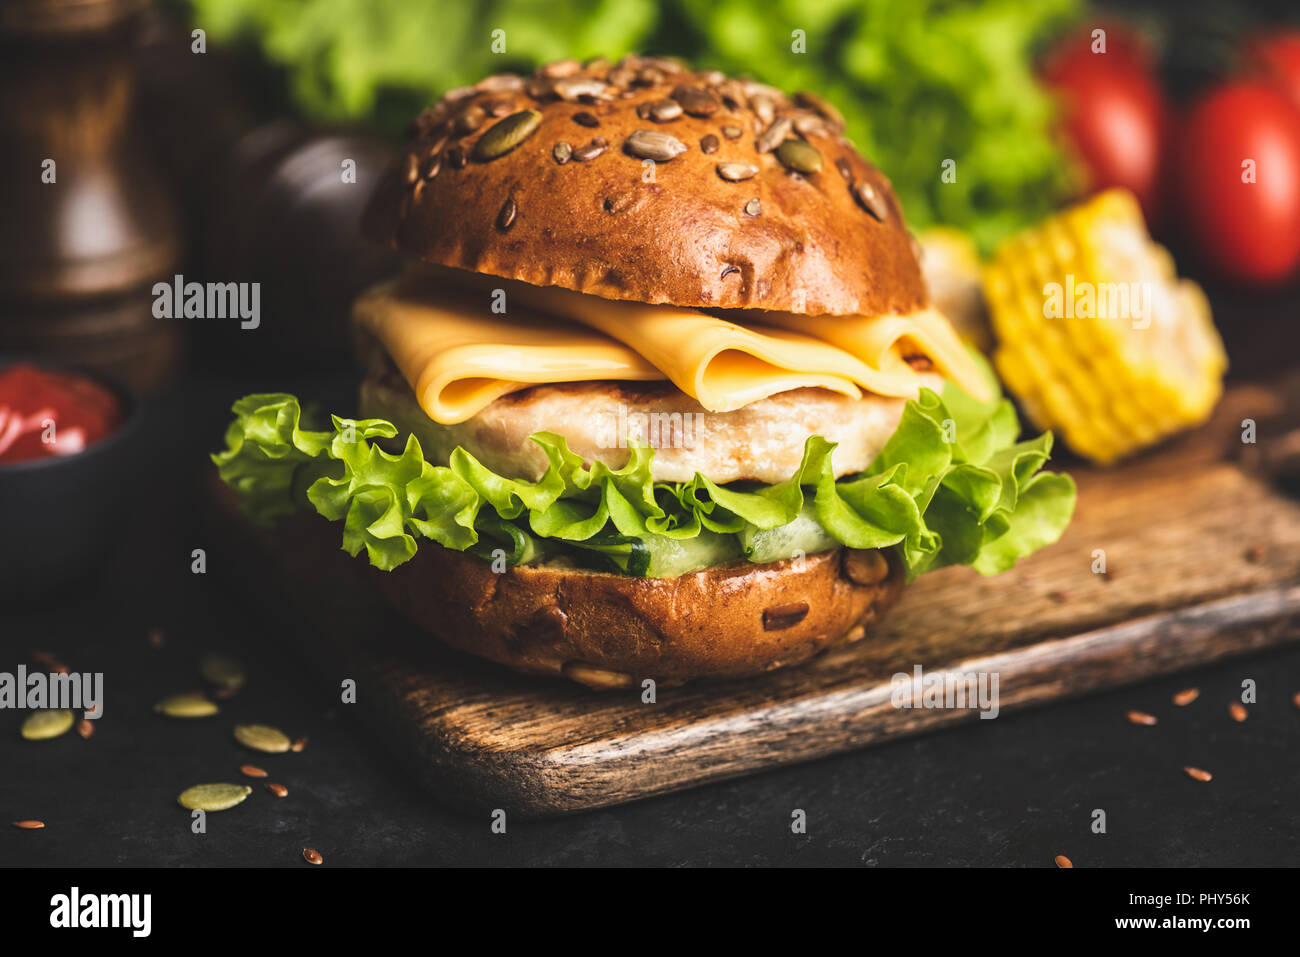 Chicken cheeseburger on whole grain bun with lettuce and grilled corn on wooden serving board. Closeup view - Stock Image